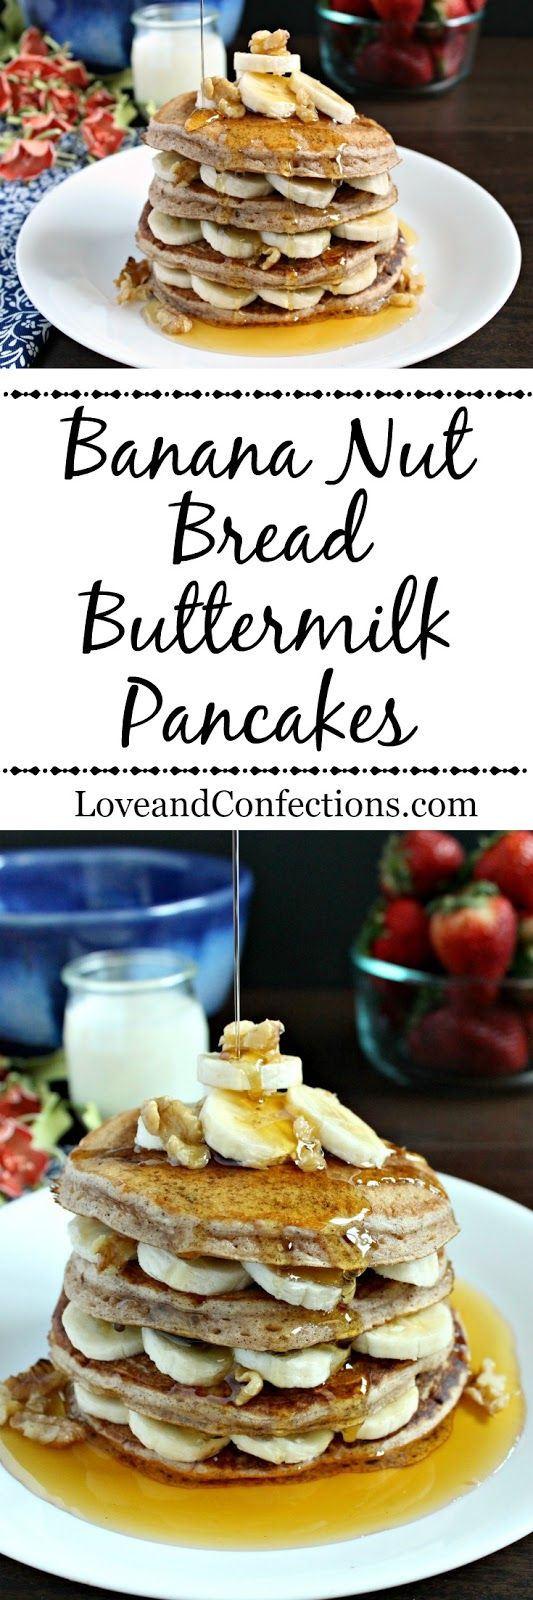 Banana Nut Bread Buttermilk Pancakes from LoveandConfections.com #BrunchWeek #sponsored with @dixiecrystals